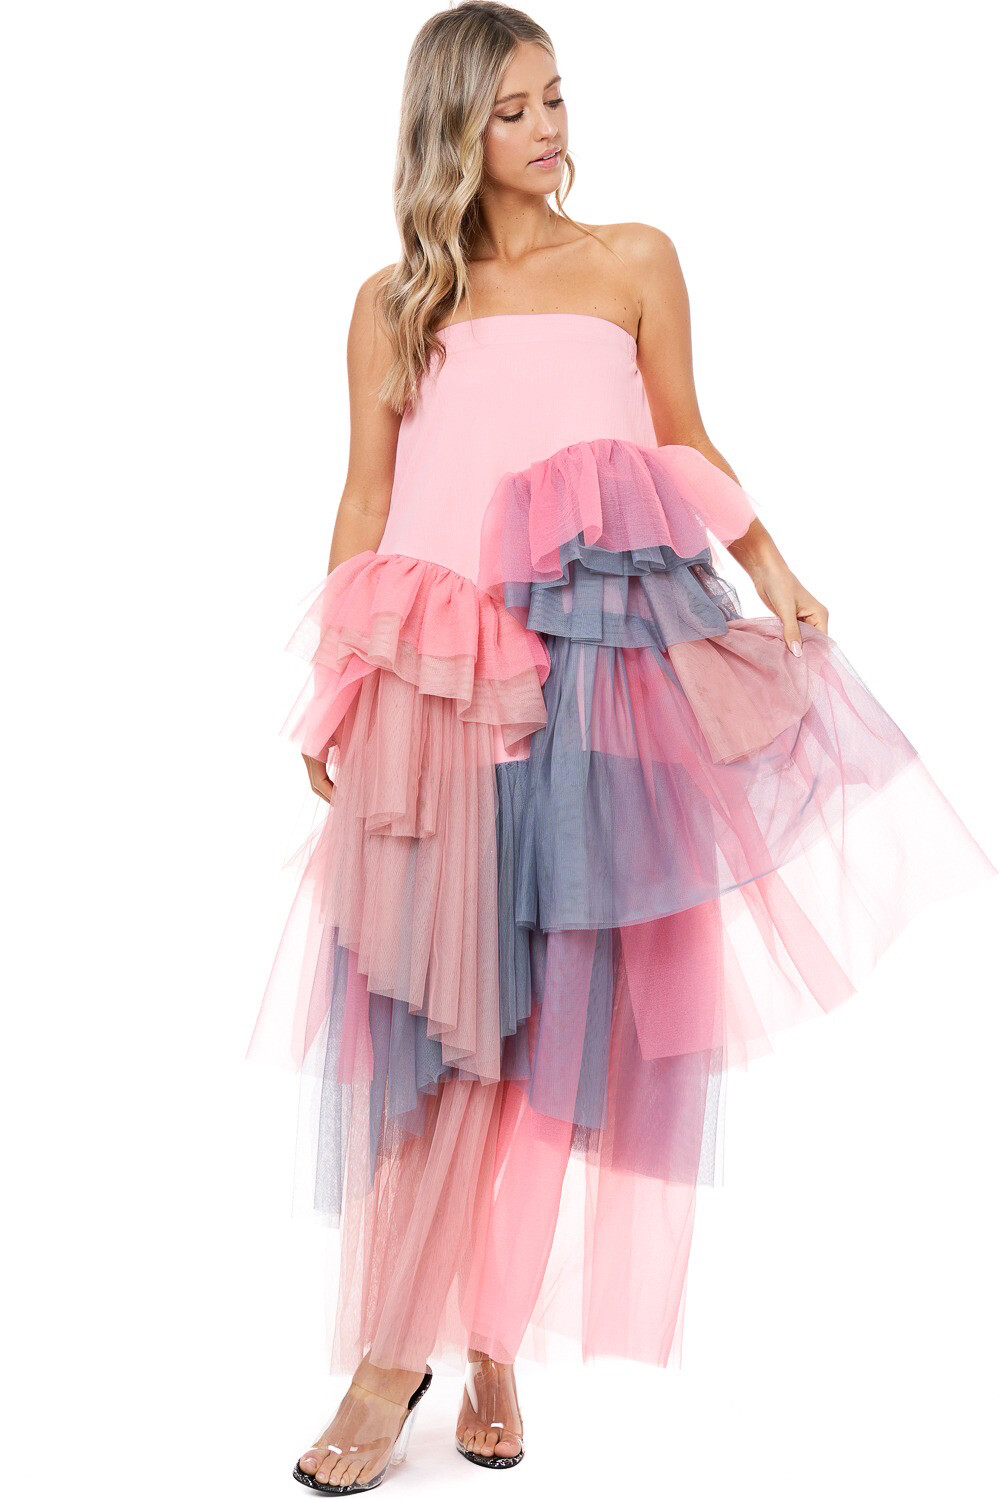 Pink Layered Tulle Dress